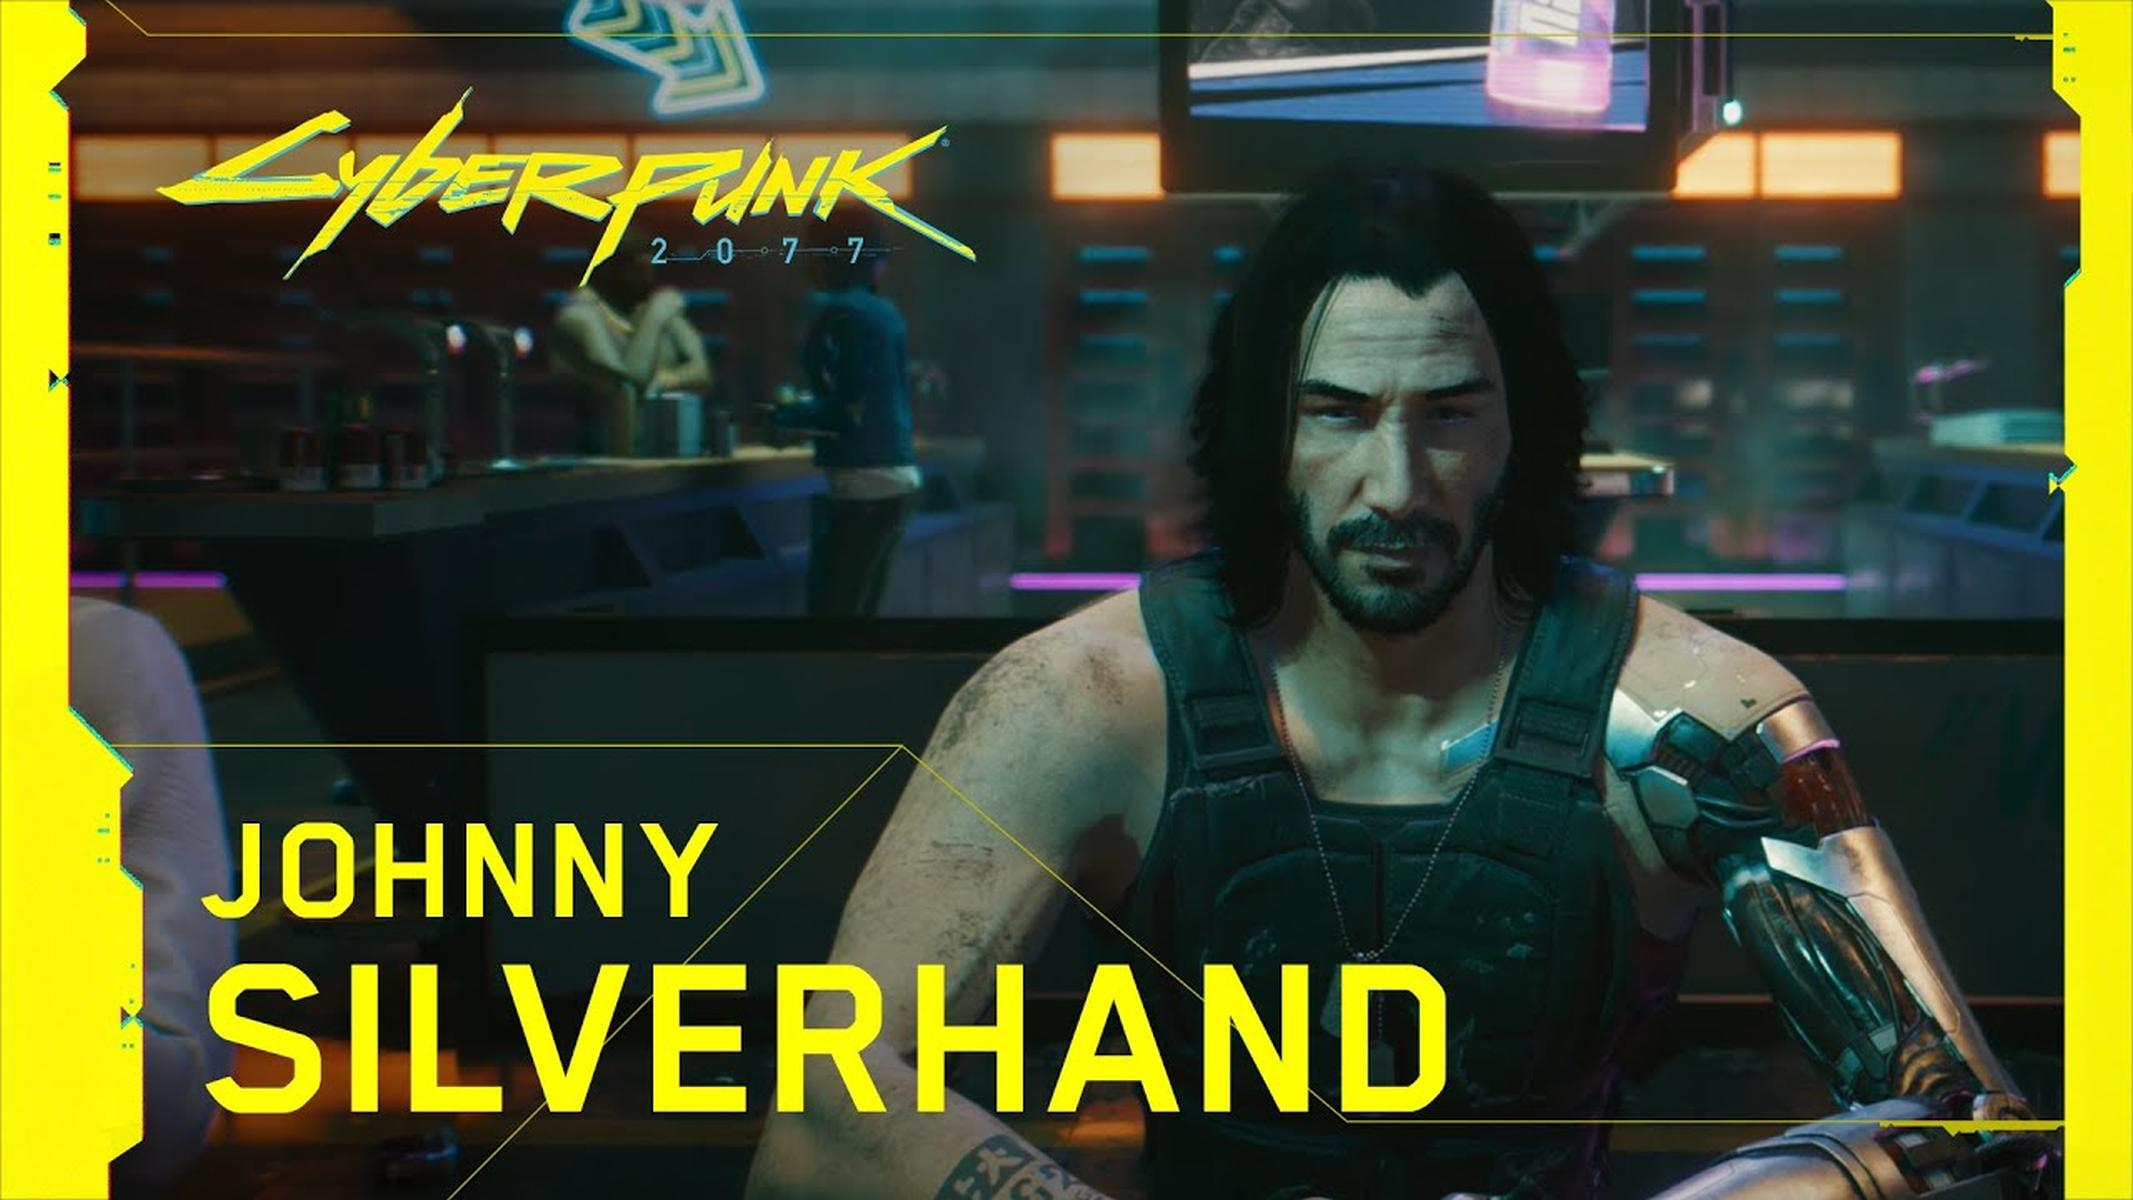 Johnny Silverhand trailer